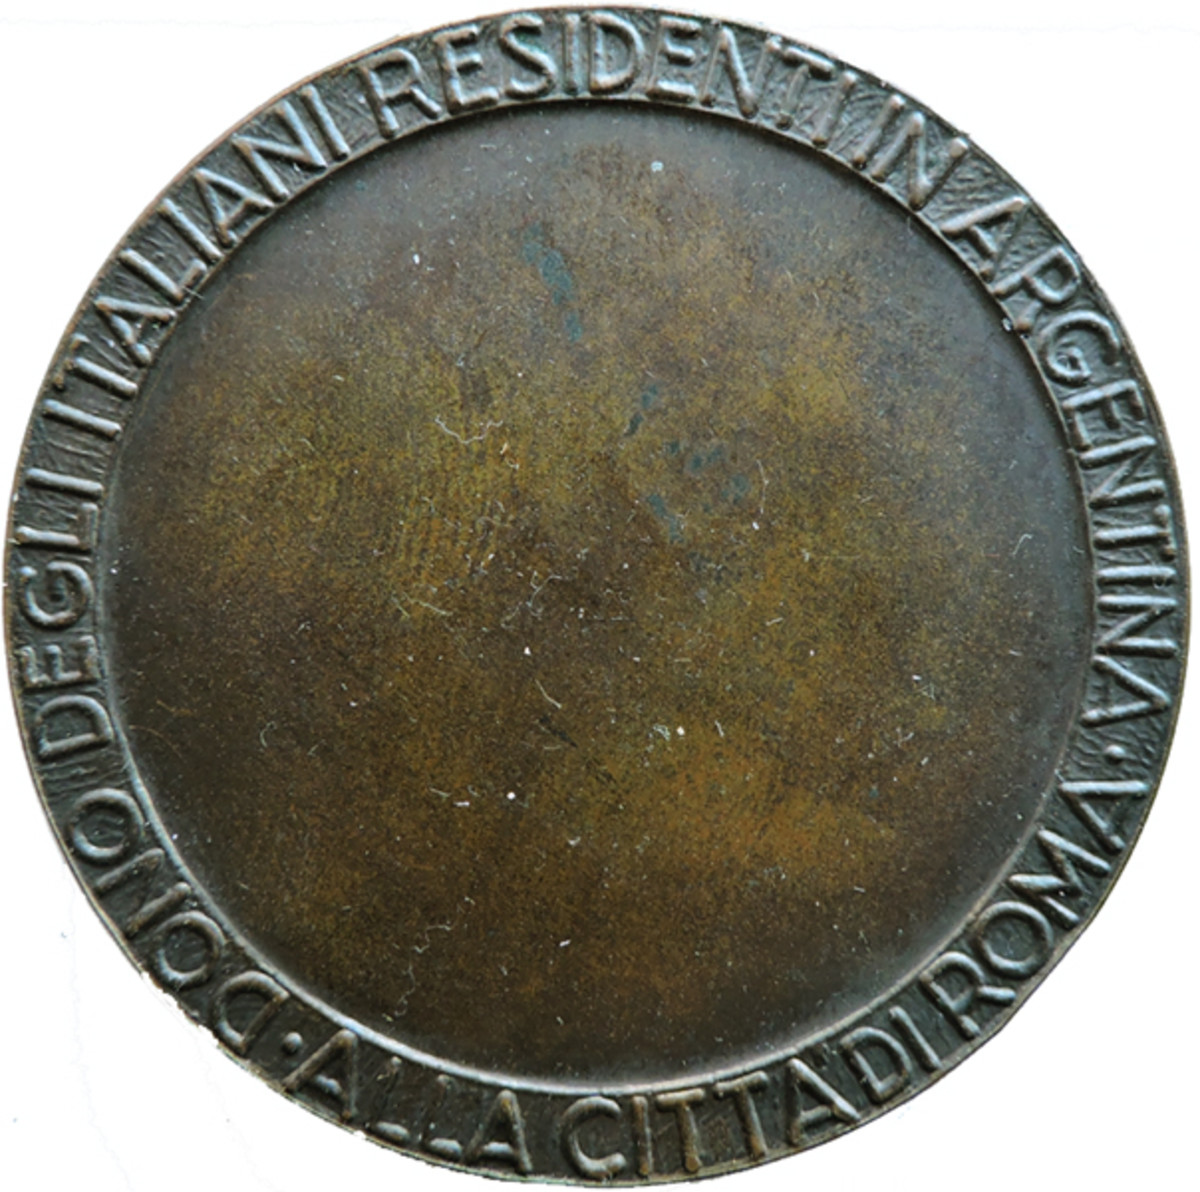 The reverse has DONO DEGLI ITALIANI RESIDENTI IN ARGENTINA ALLA CITTA'DI ROMA on the perimeter. The medal weighs 46.95 gram and has a diameter of 51.12 mm. If I ever finish my reference work on San Martin medals, it will have an attribution.